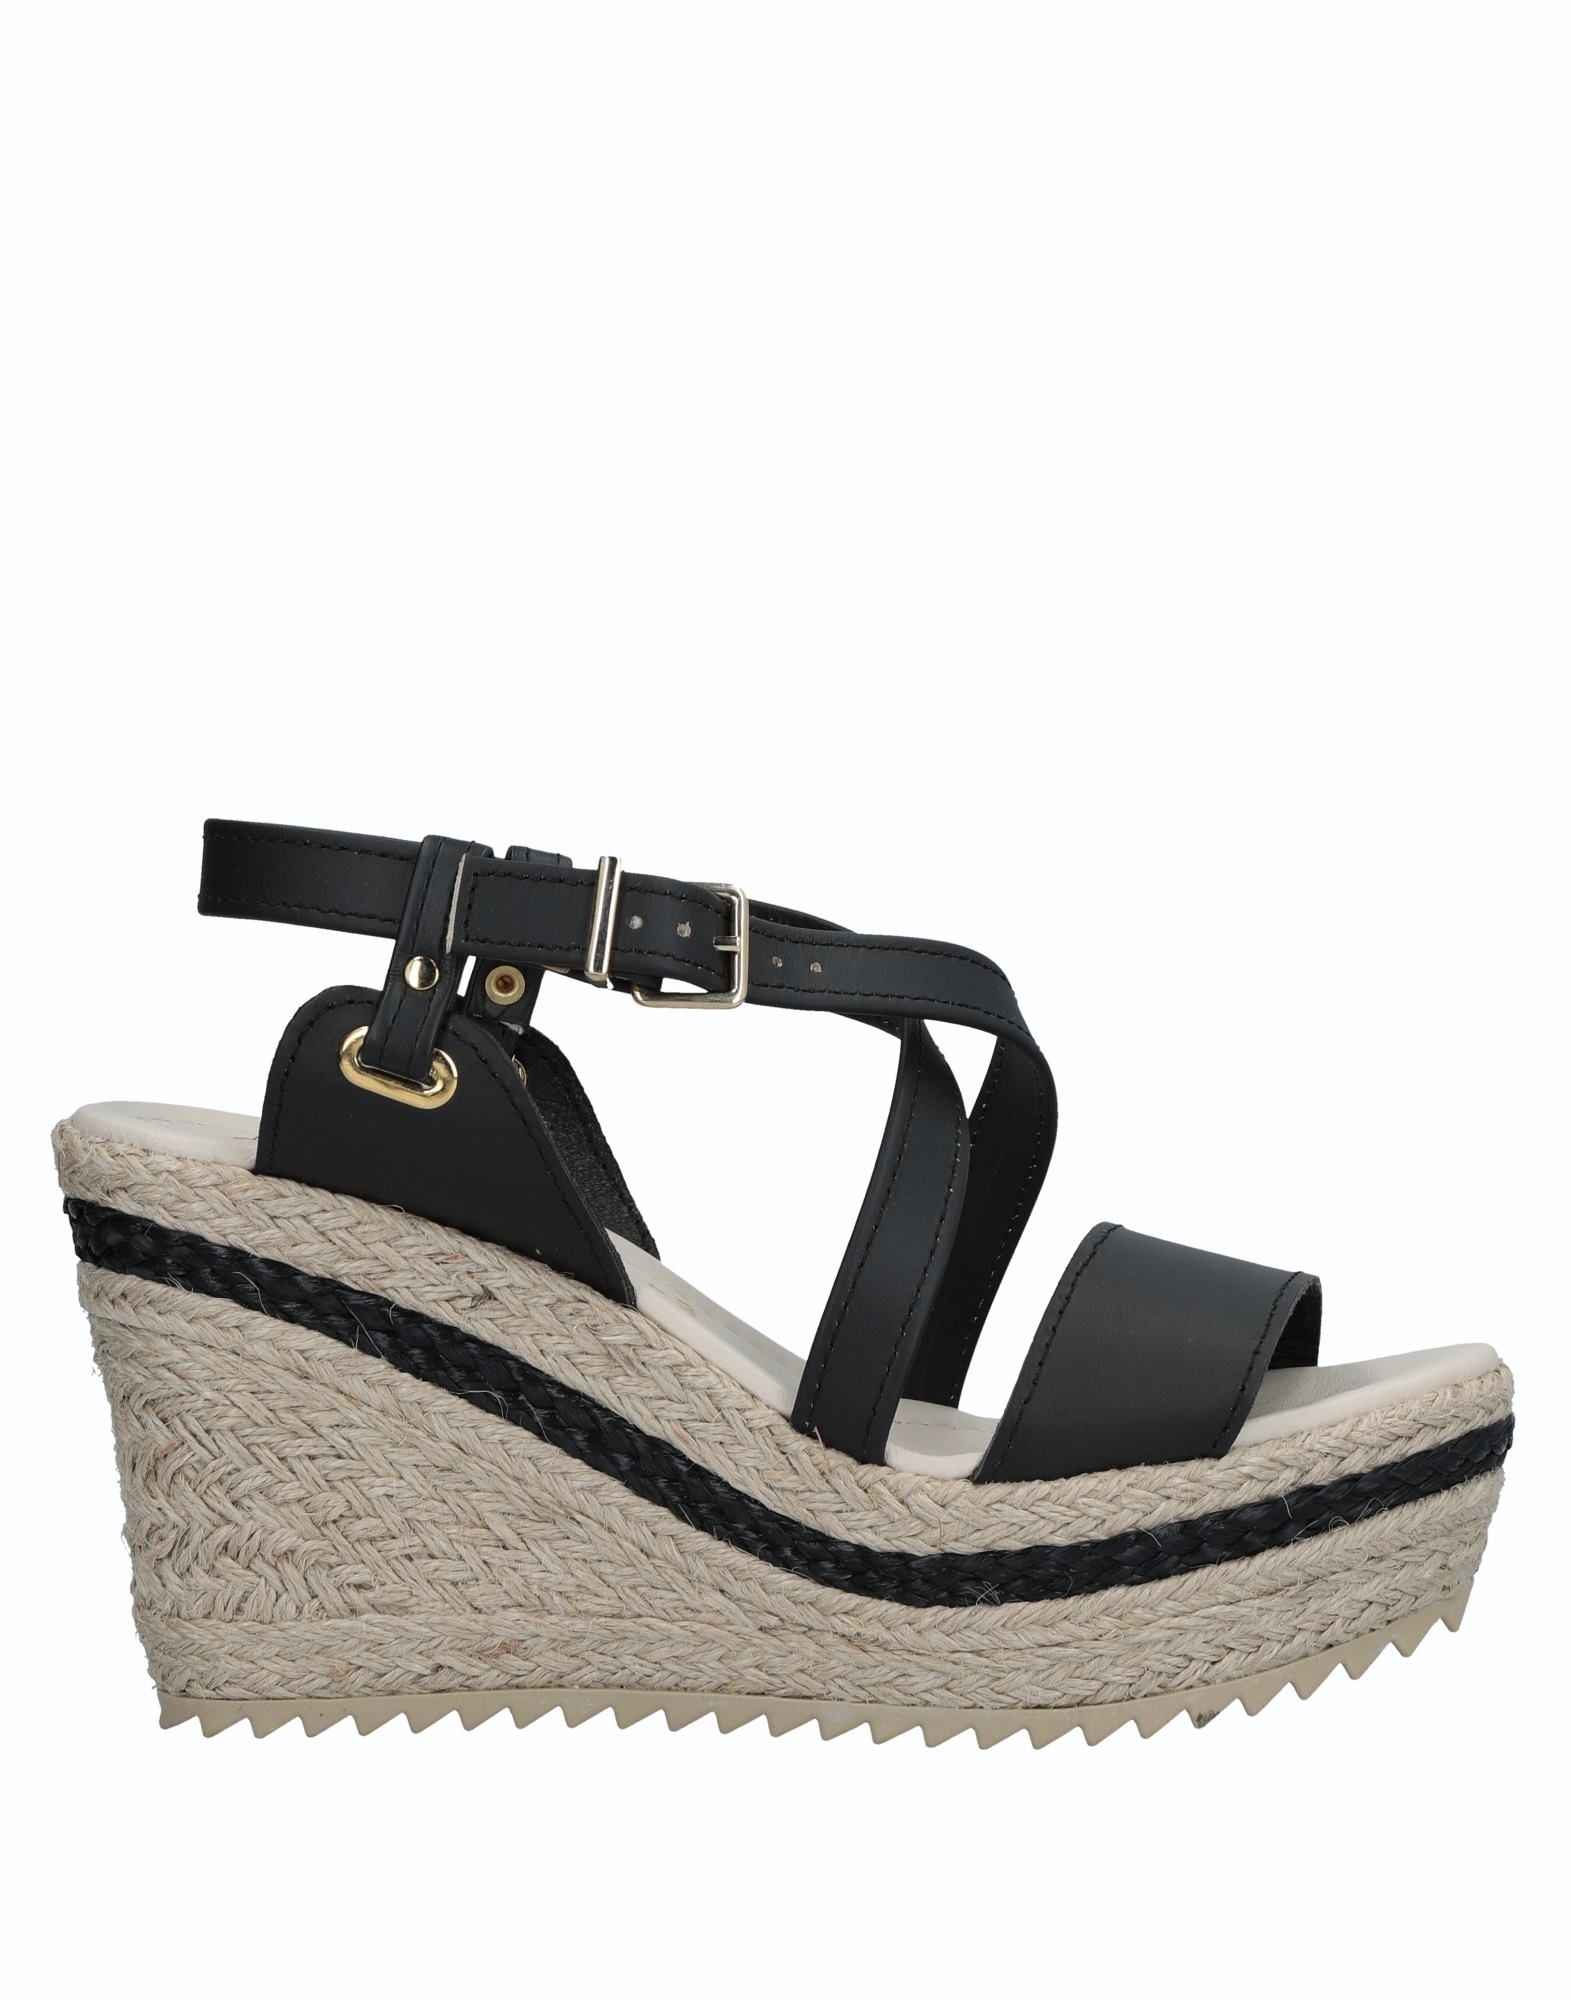 Onako' Sandals Sandals - Women Onako' Sandals Onako' online on  United Kingdom - 11515851XQ 6f038e